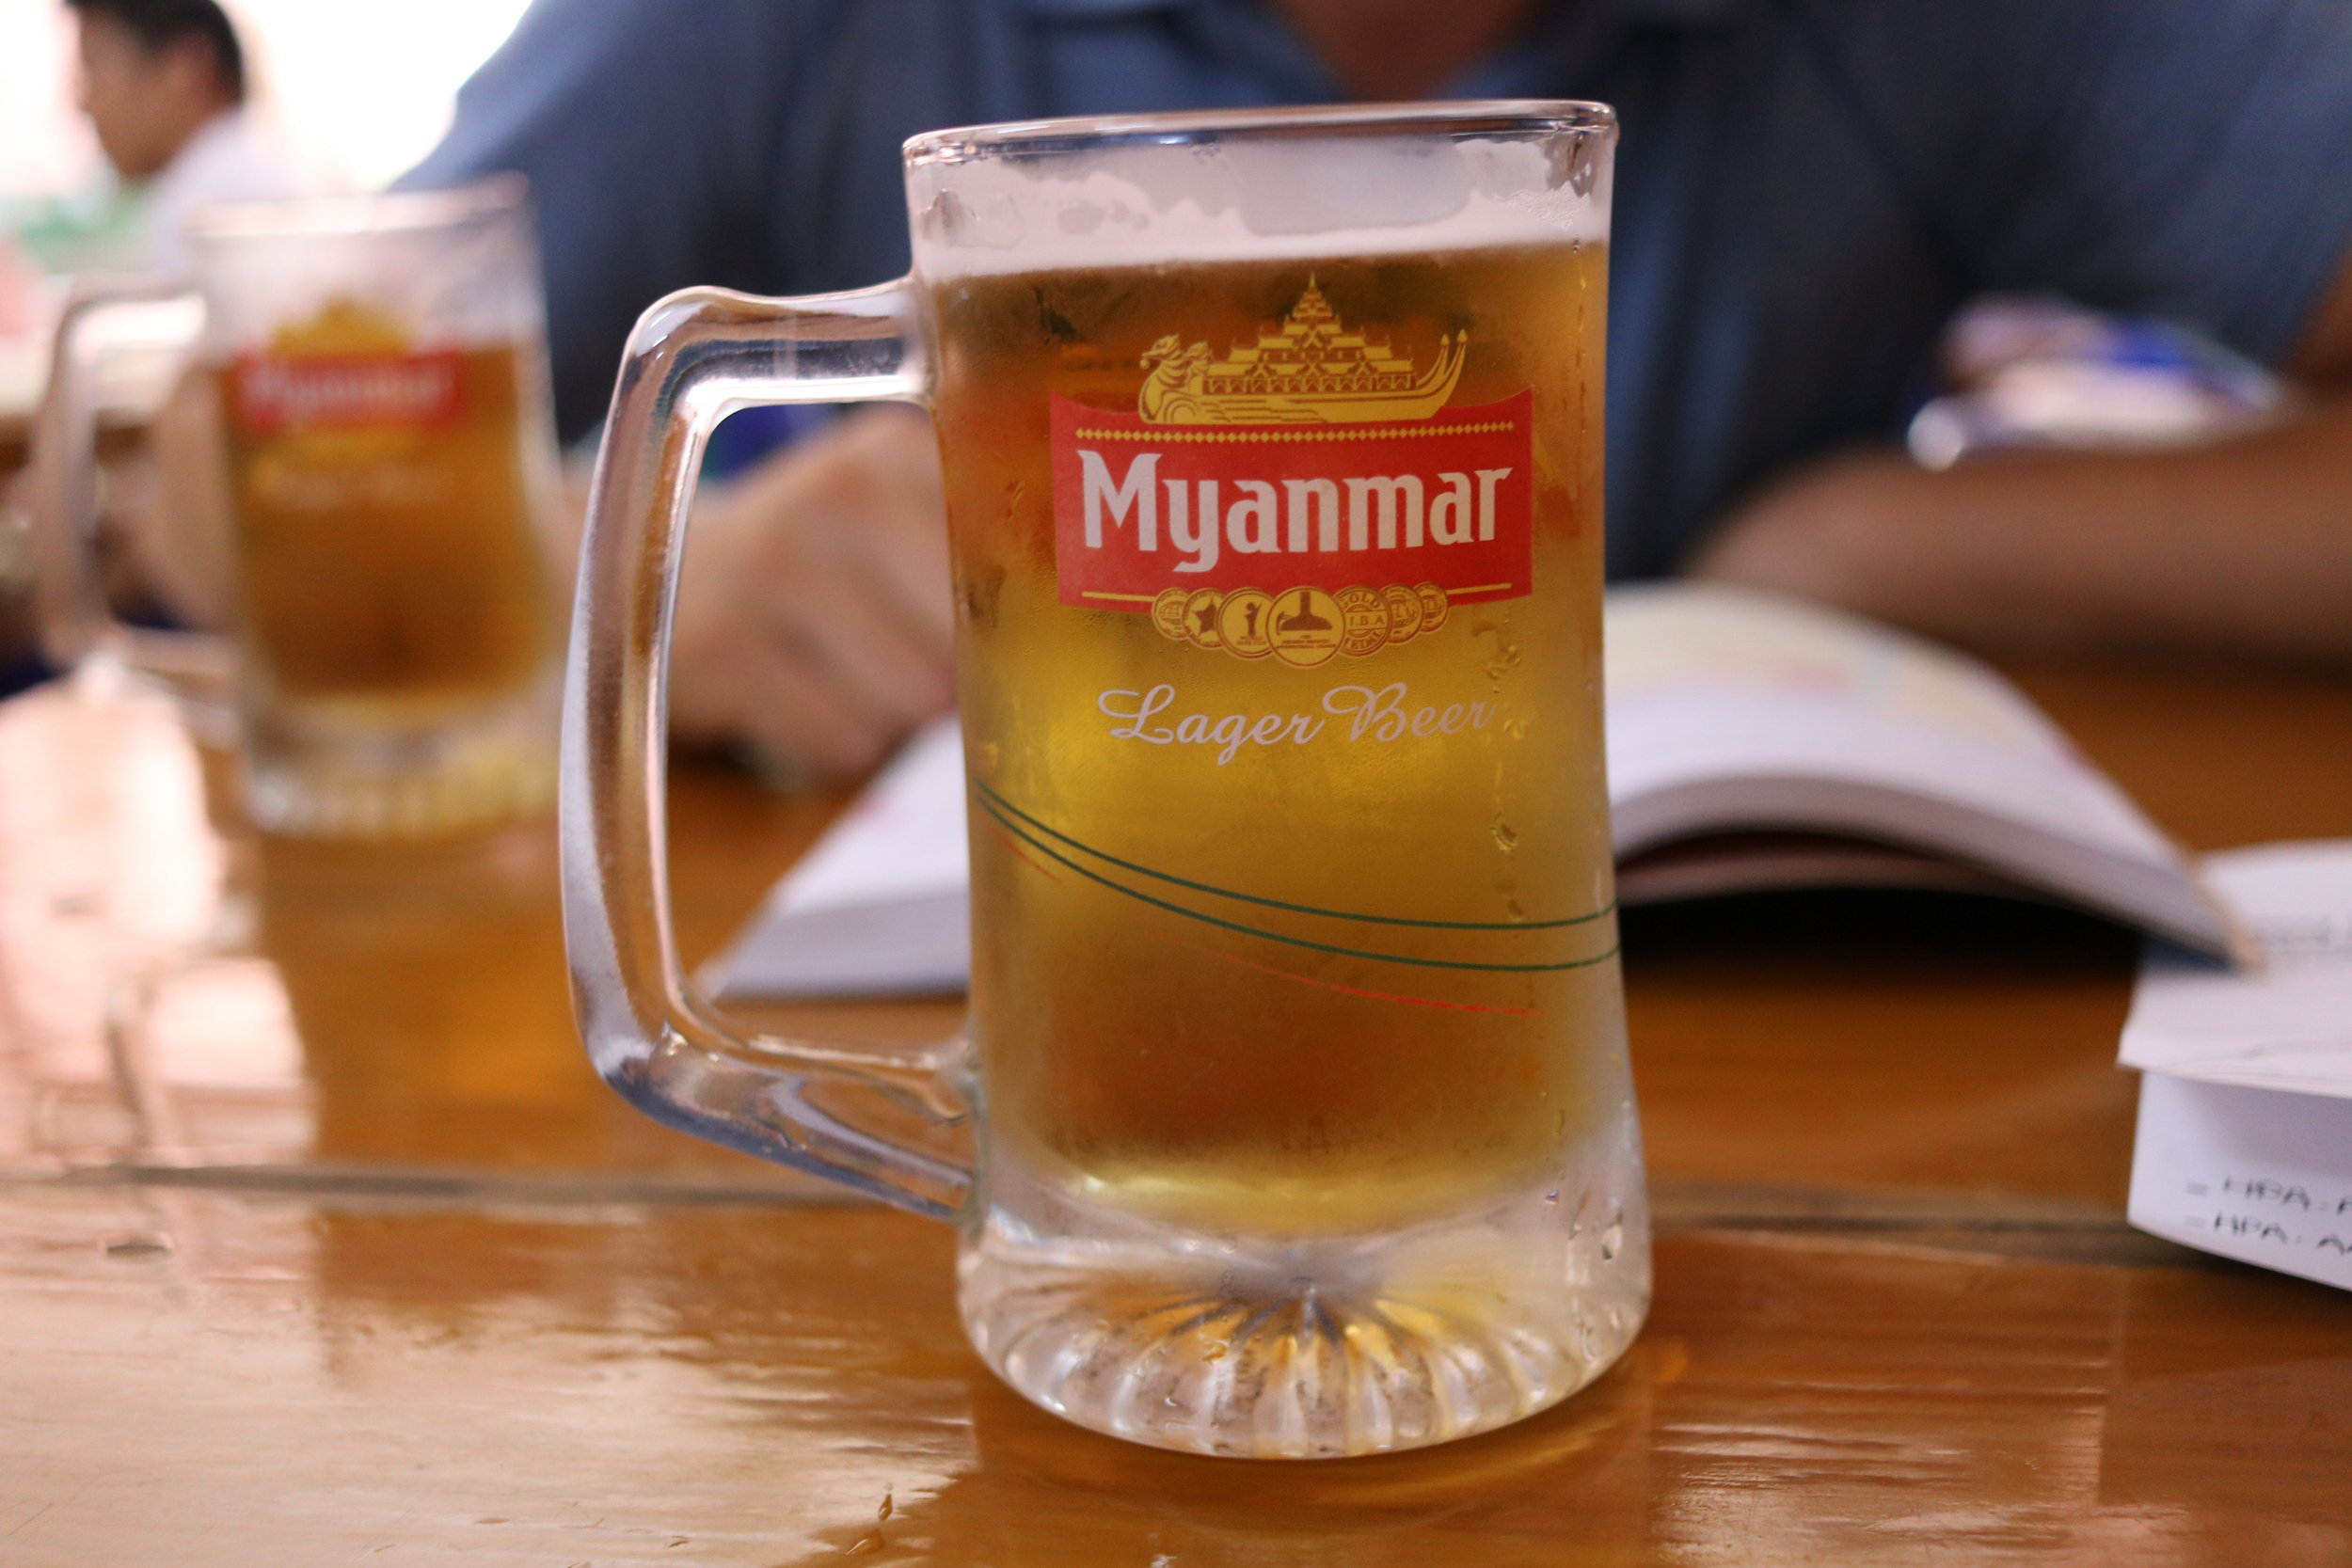 Our definitive guide to Hpa-an, Beer, Myanmar